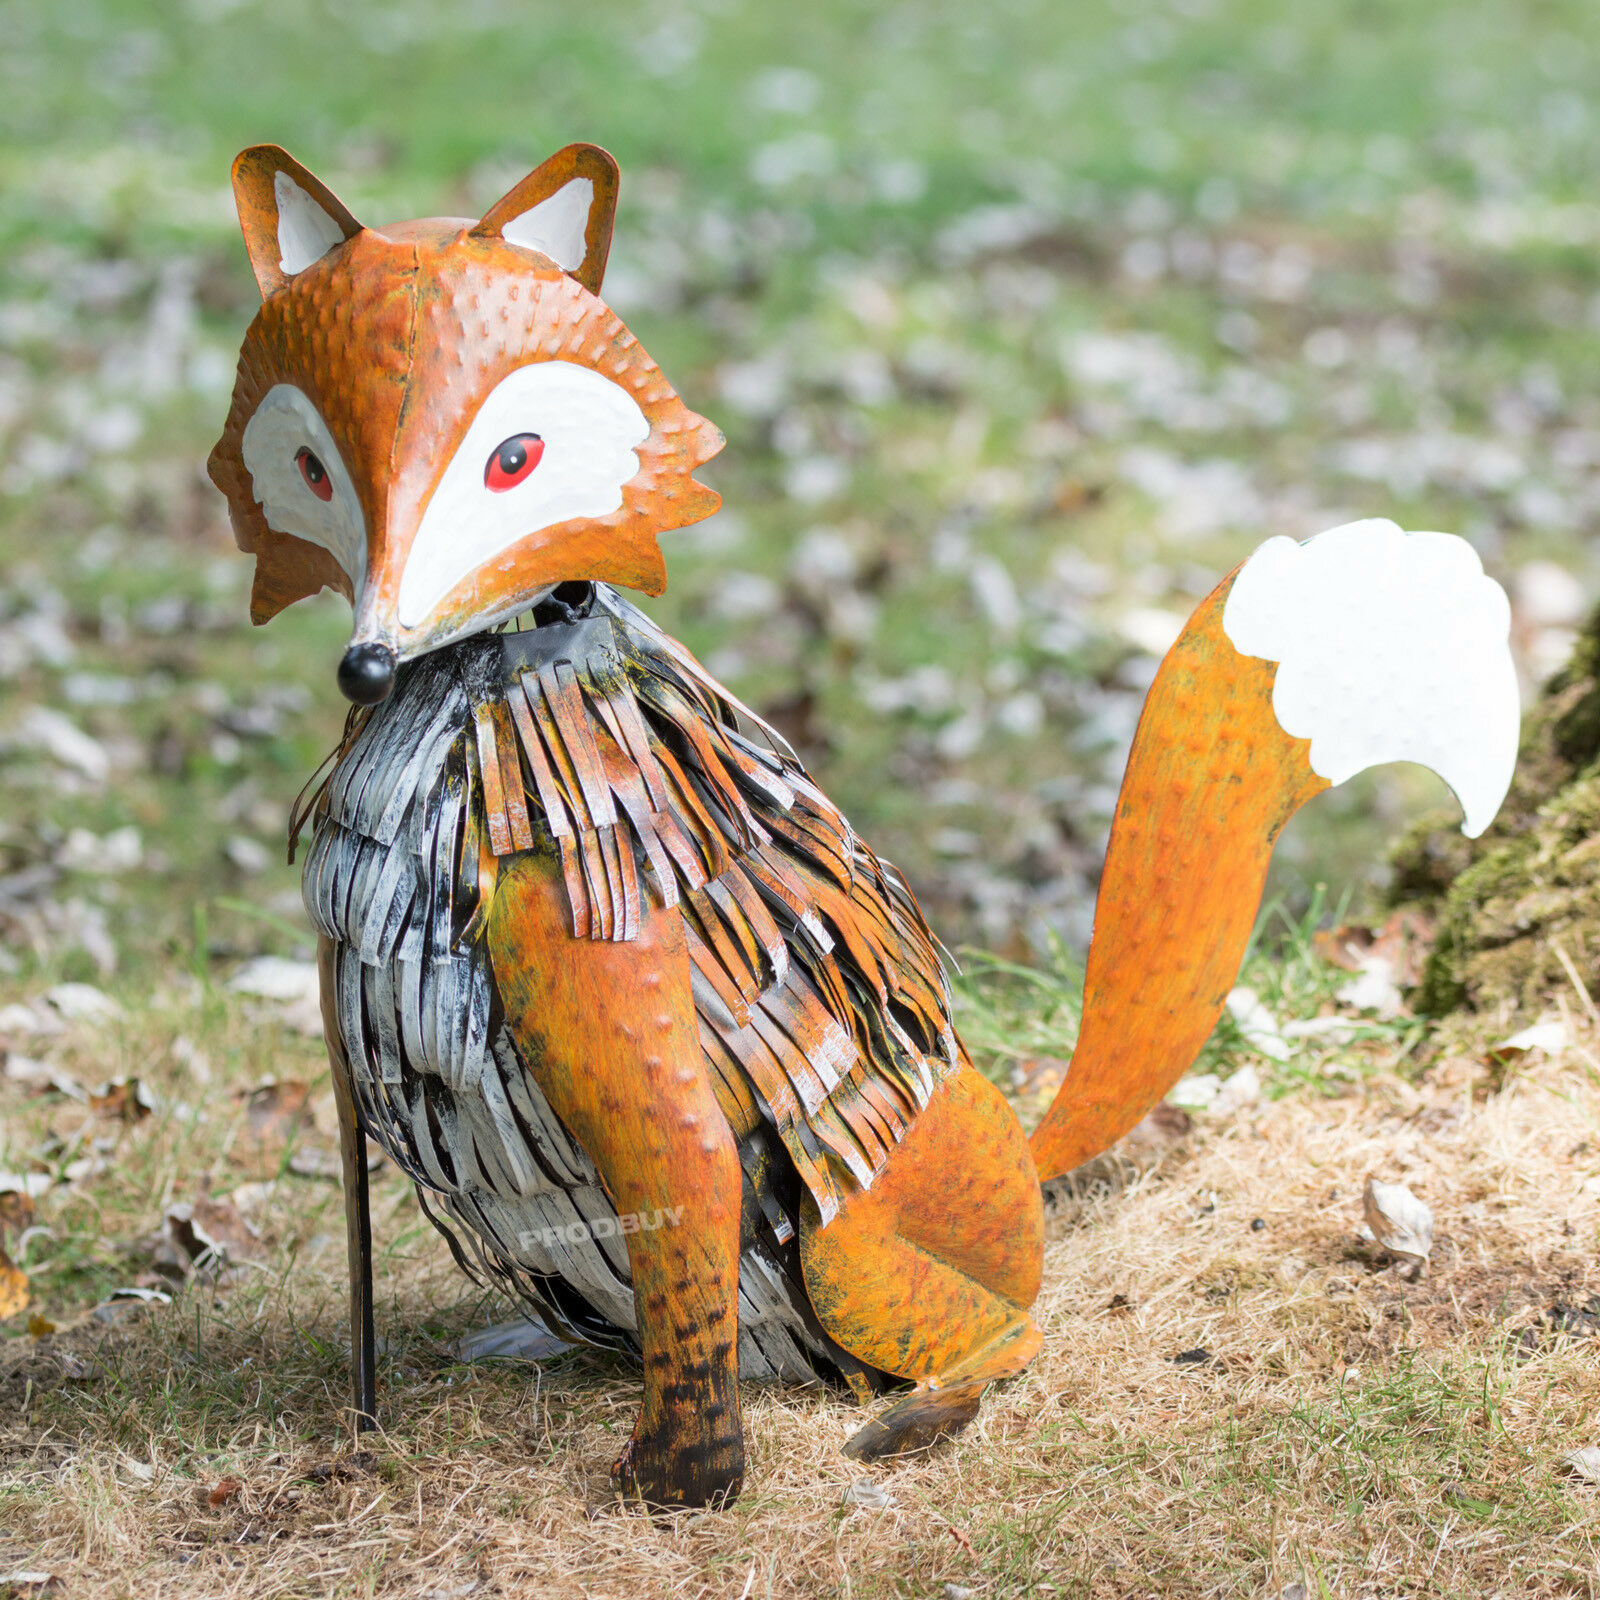 40cm Large Fox Metal Metal Metal Garden Ornament Outdoor Animal Lawn Sculpture Statue Gift d3556a